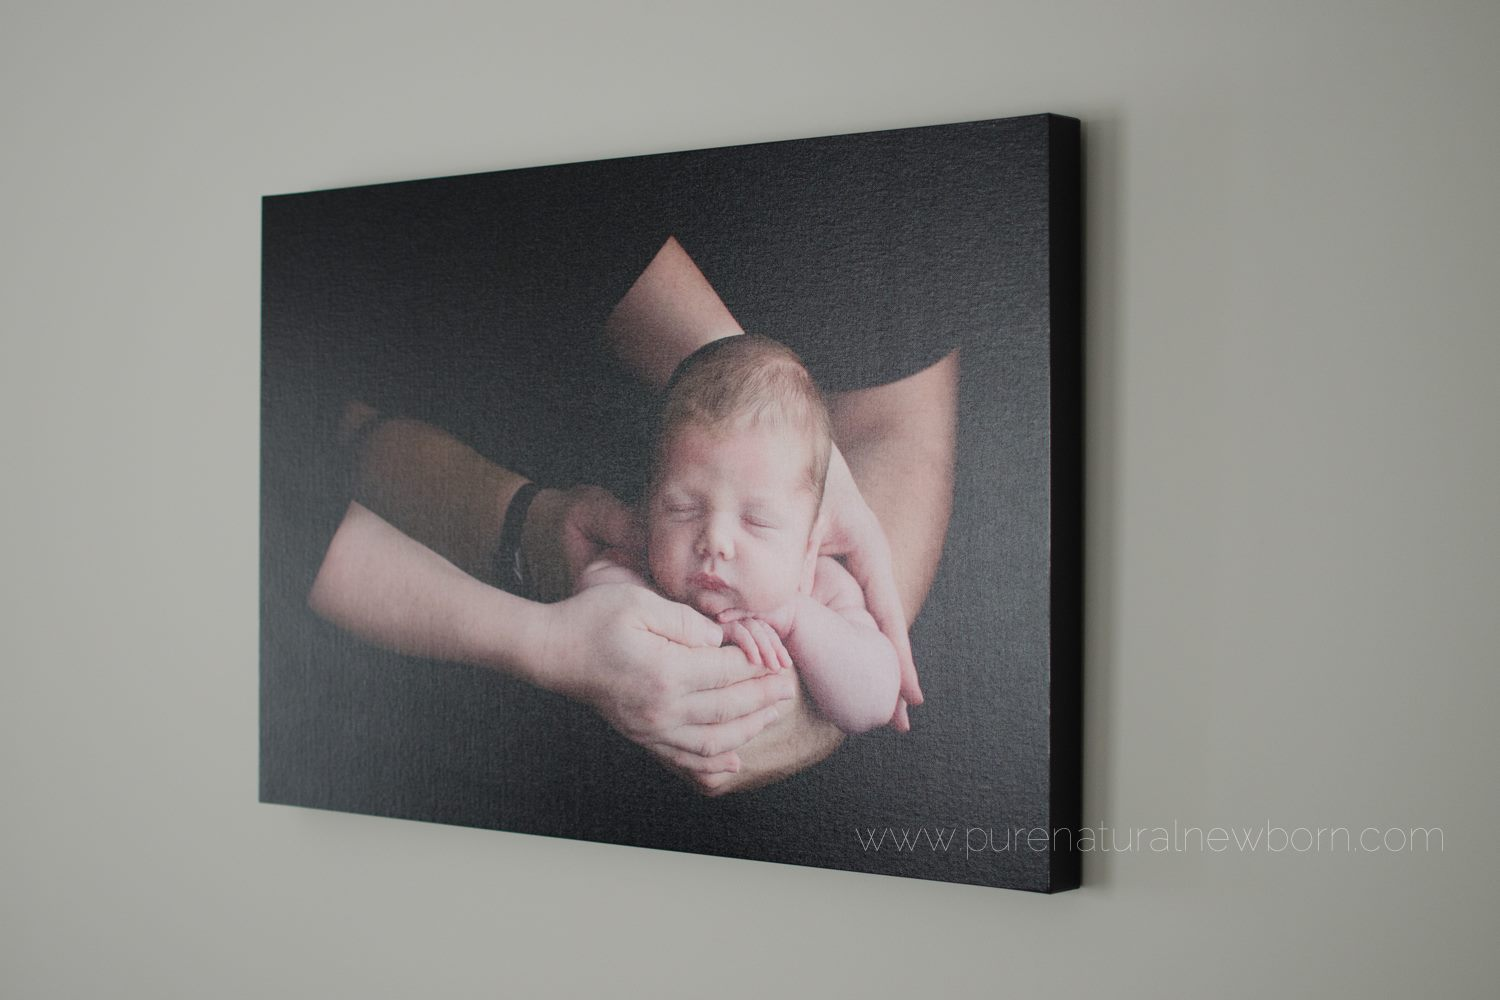 ottawa-newborn-photographer-print-product-large-wall-art-canvas-print-thick-edges-baby-parents-photo